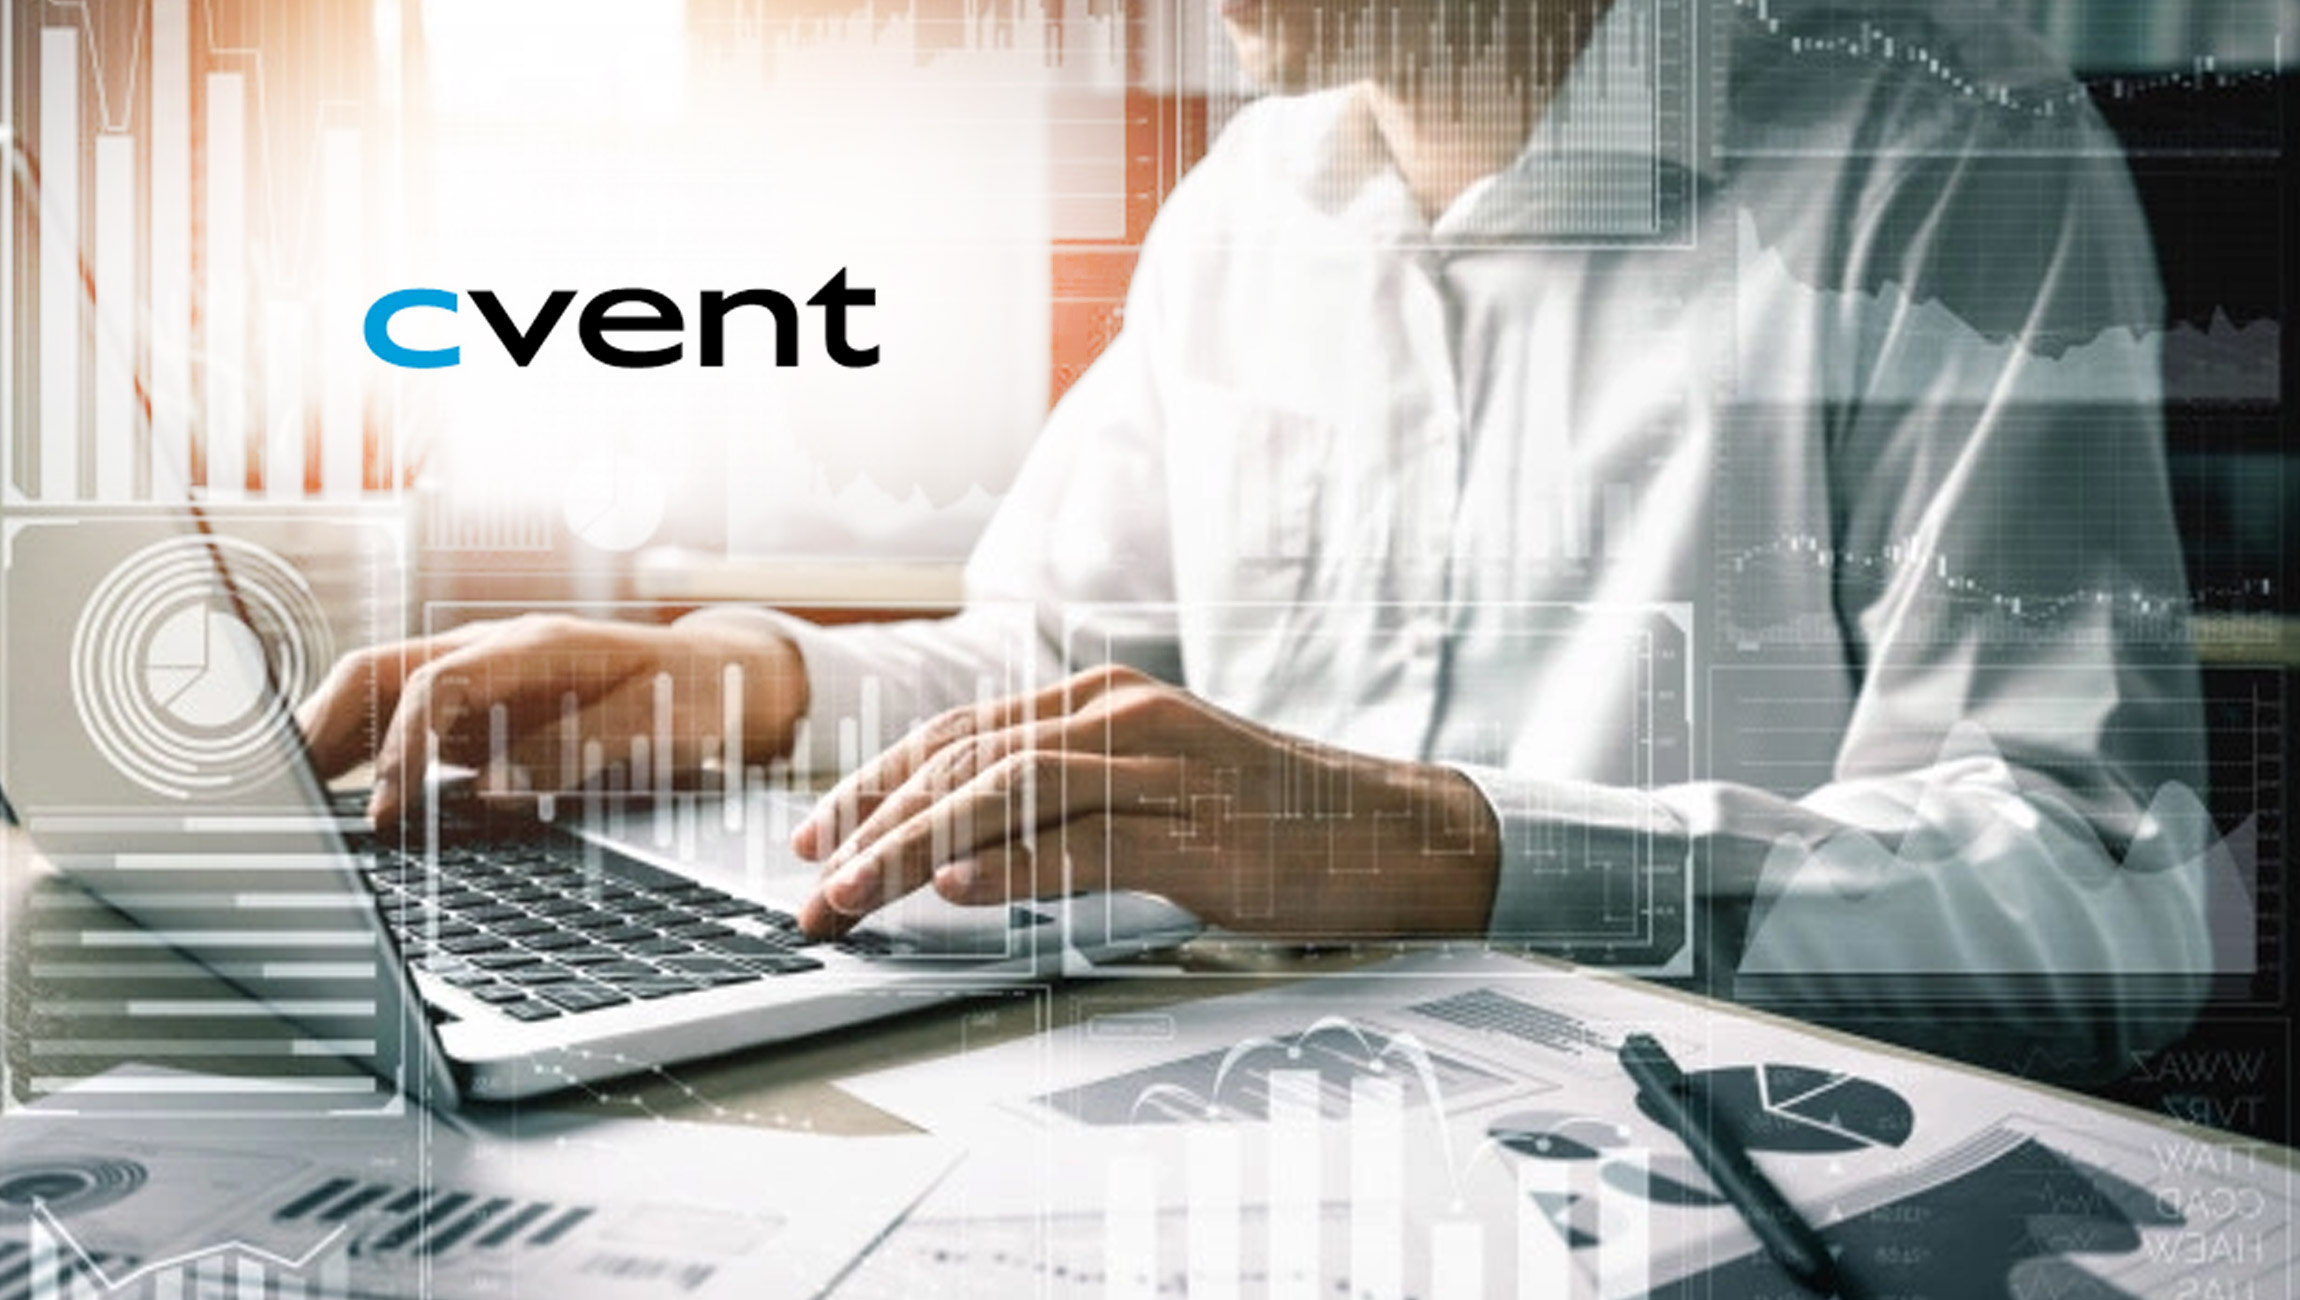 Cvent, a Leading Enterprise Event Technology Provider, to Become Publicly Traded After Combining with Dragoneer Growth Opportunities Corp. II